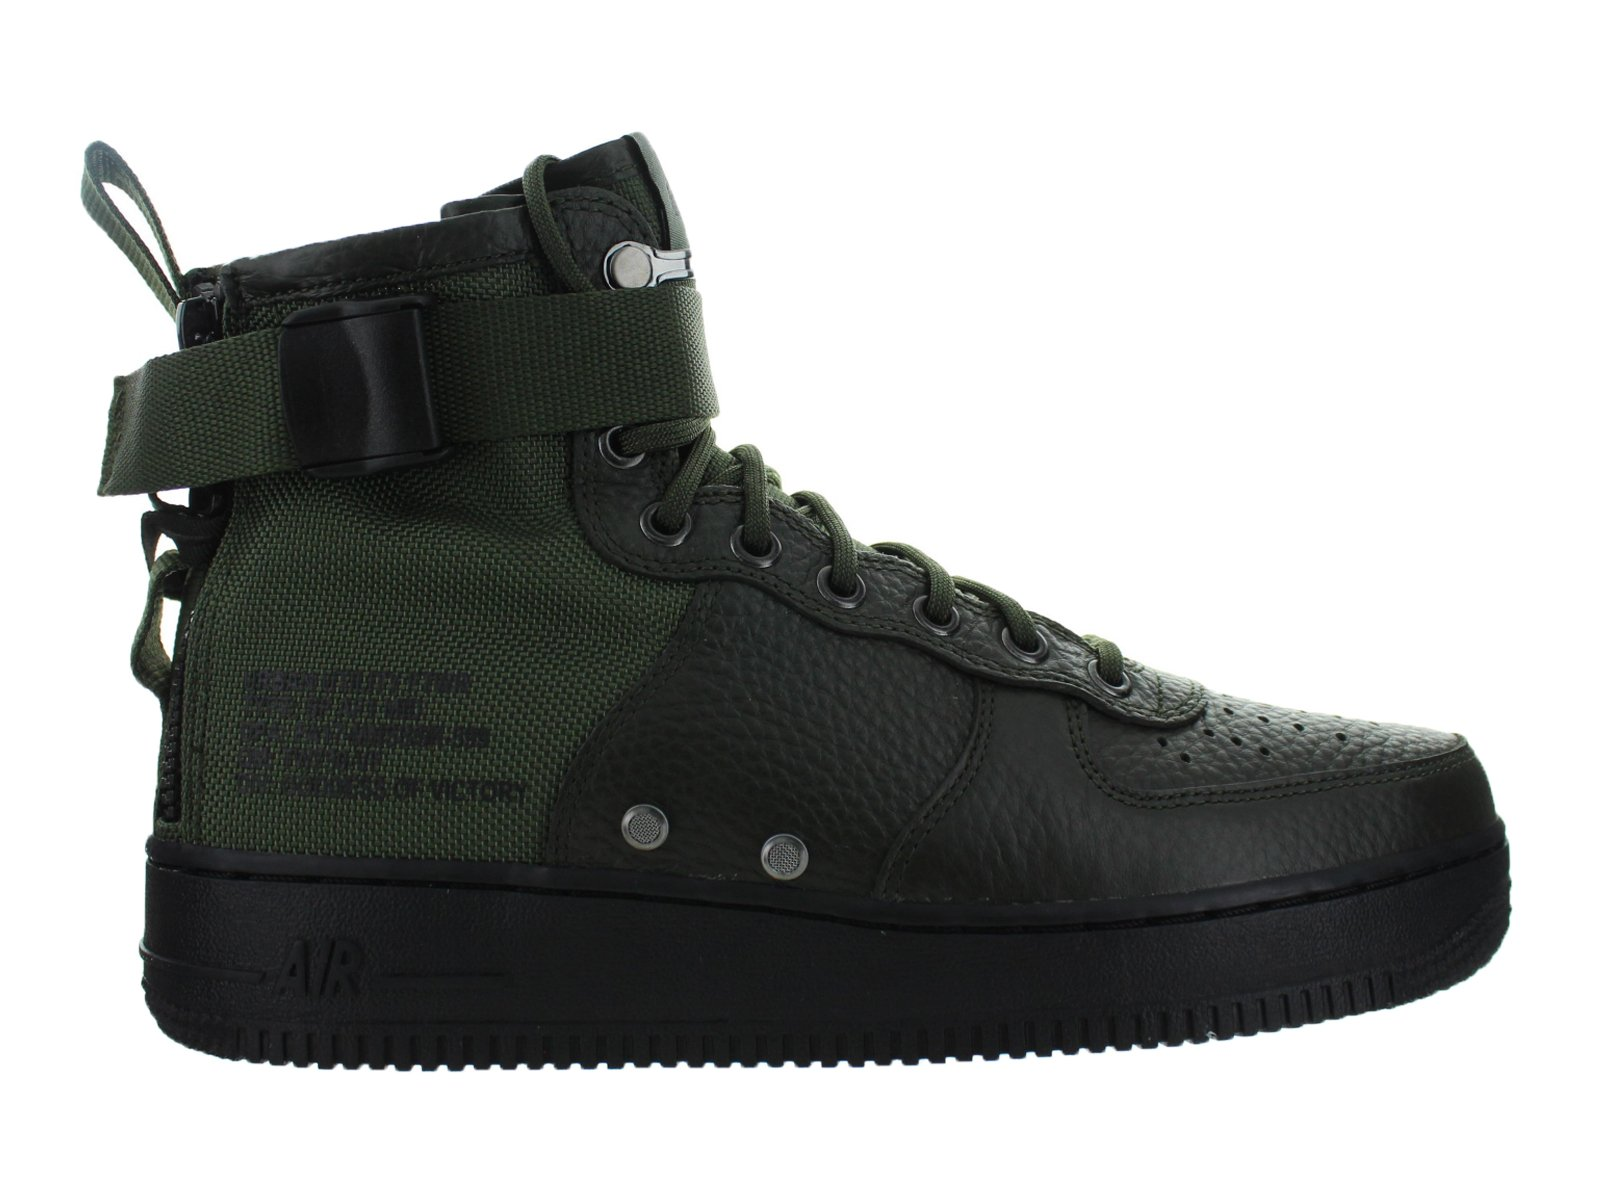 Mens Nike Special Field Air Force 1 Mid Sequoia Black 917753-300